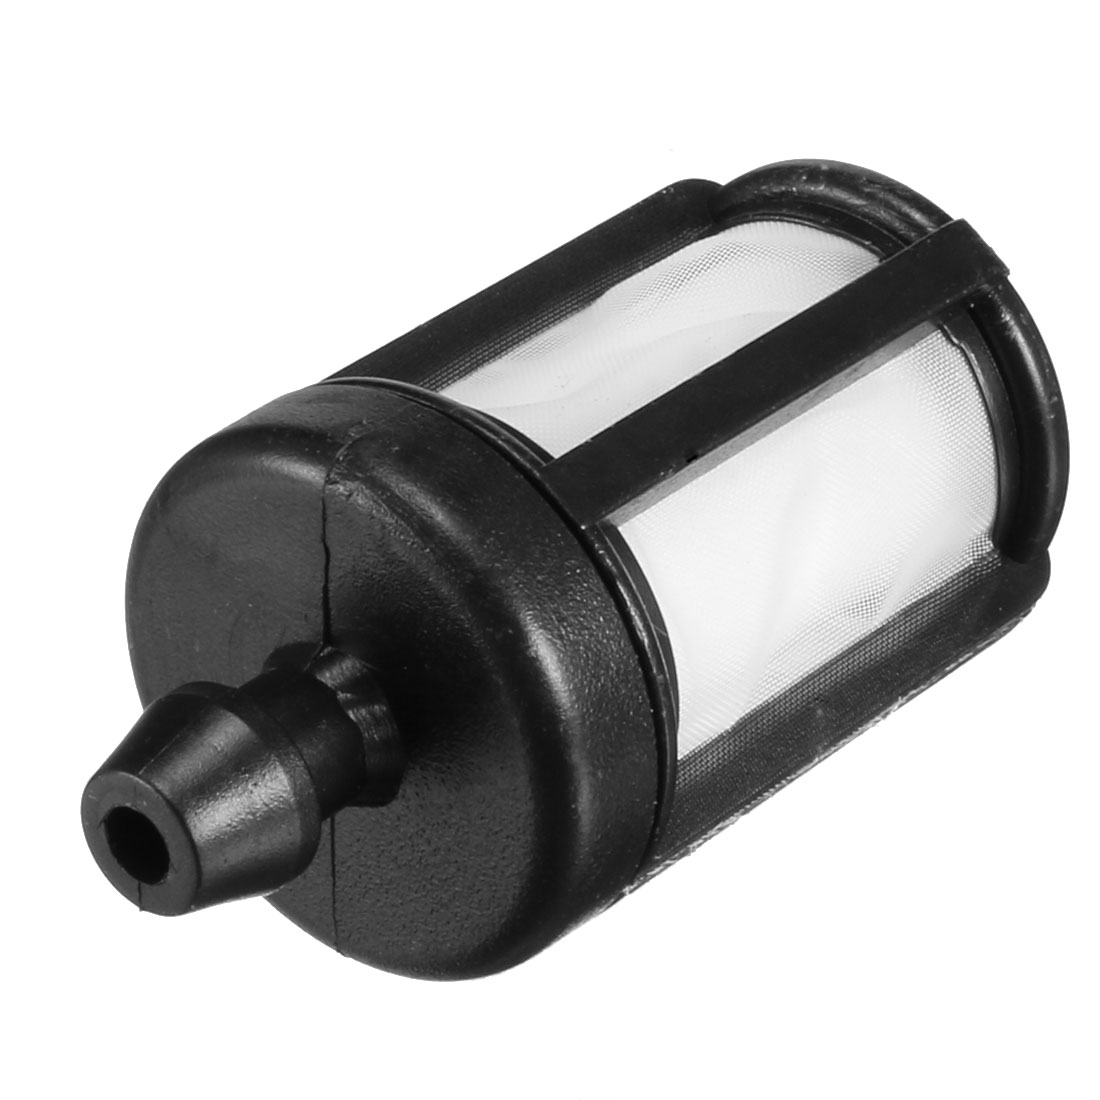 fuel filter replacement for ms381 weedeater chainsaw trimmer edger blower Fram Oil Filter Chart